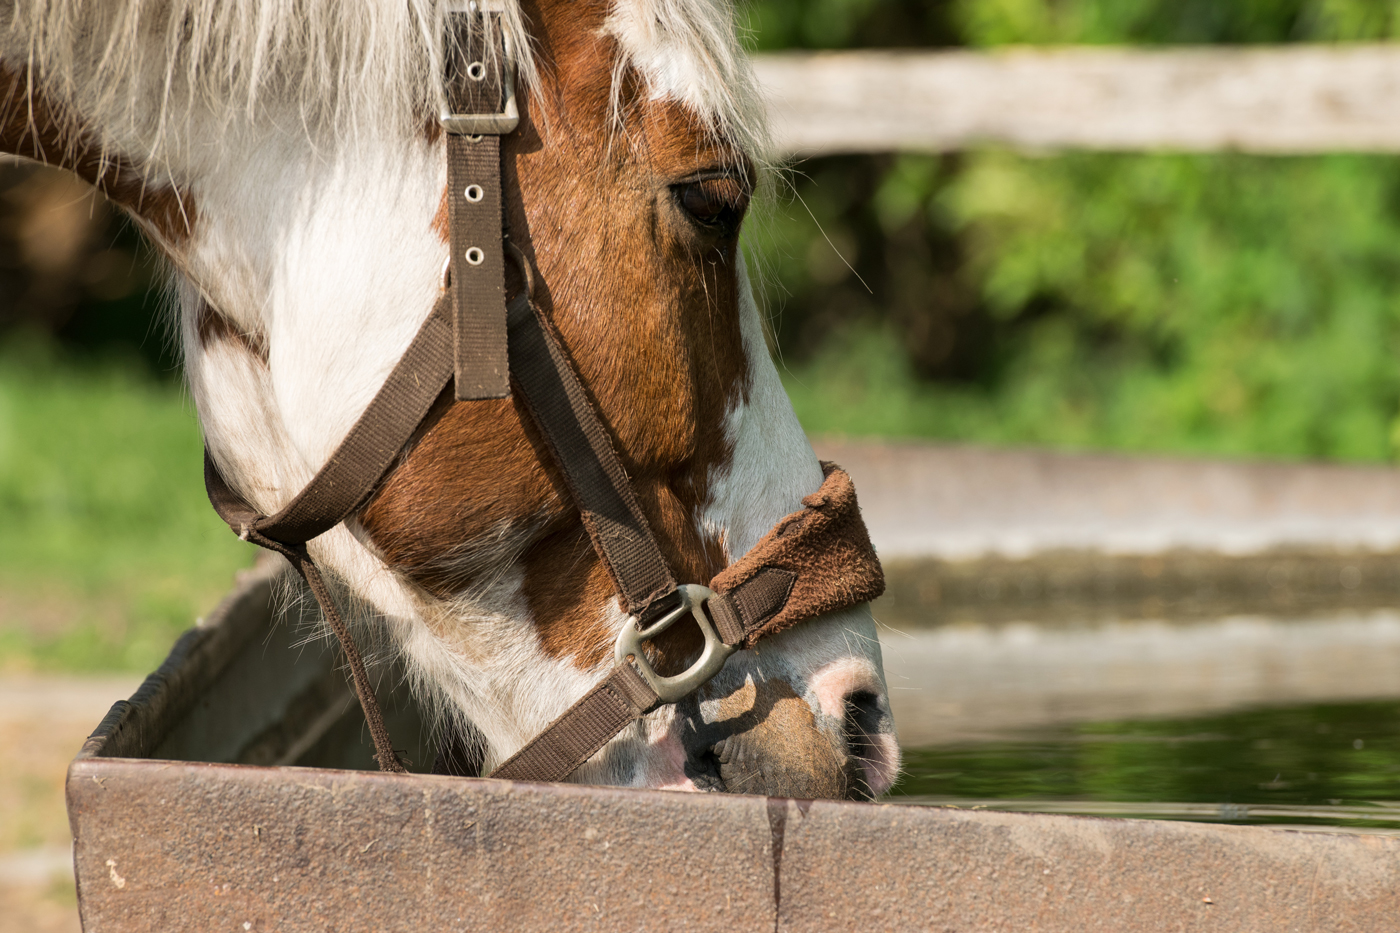 A horse drinking from a trough